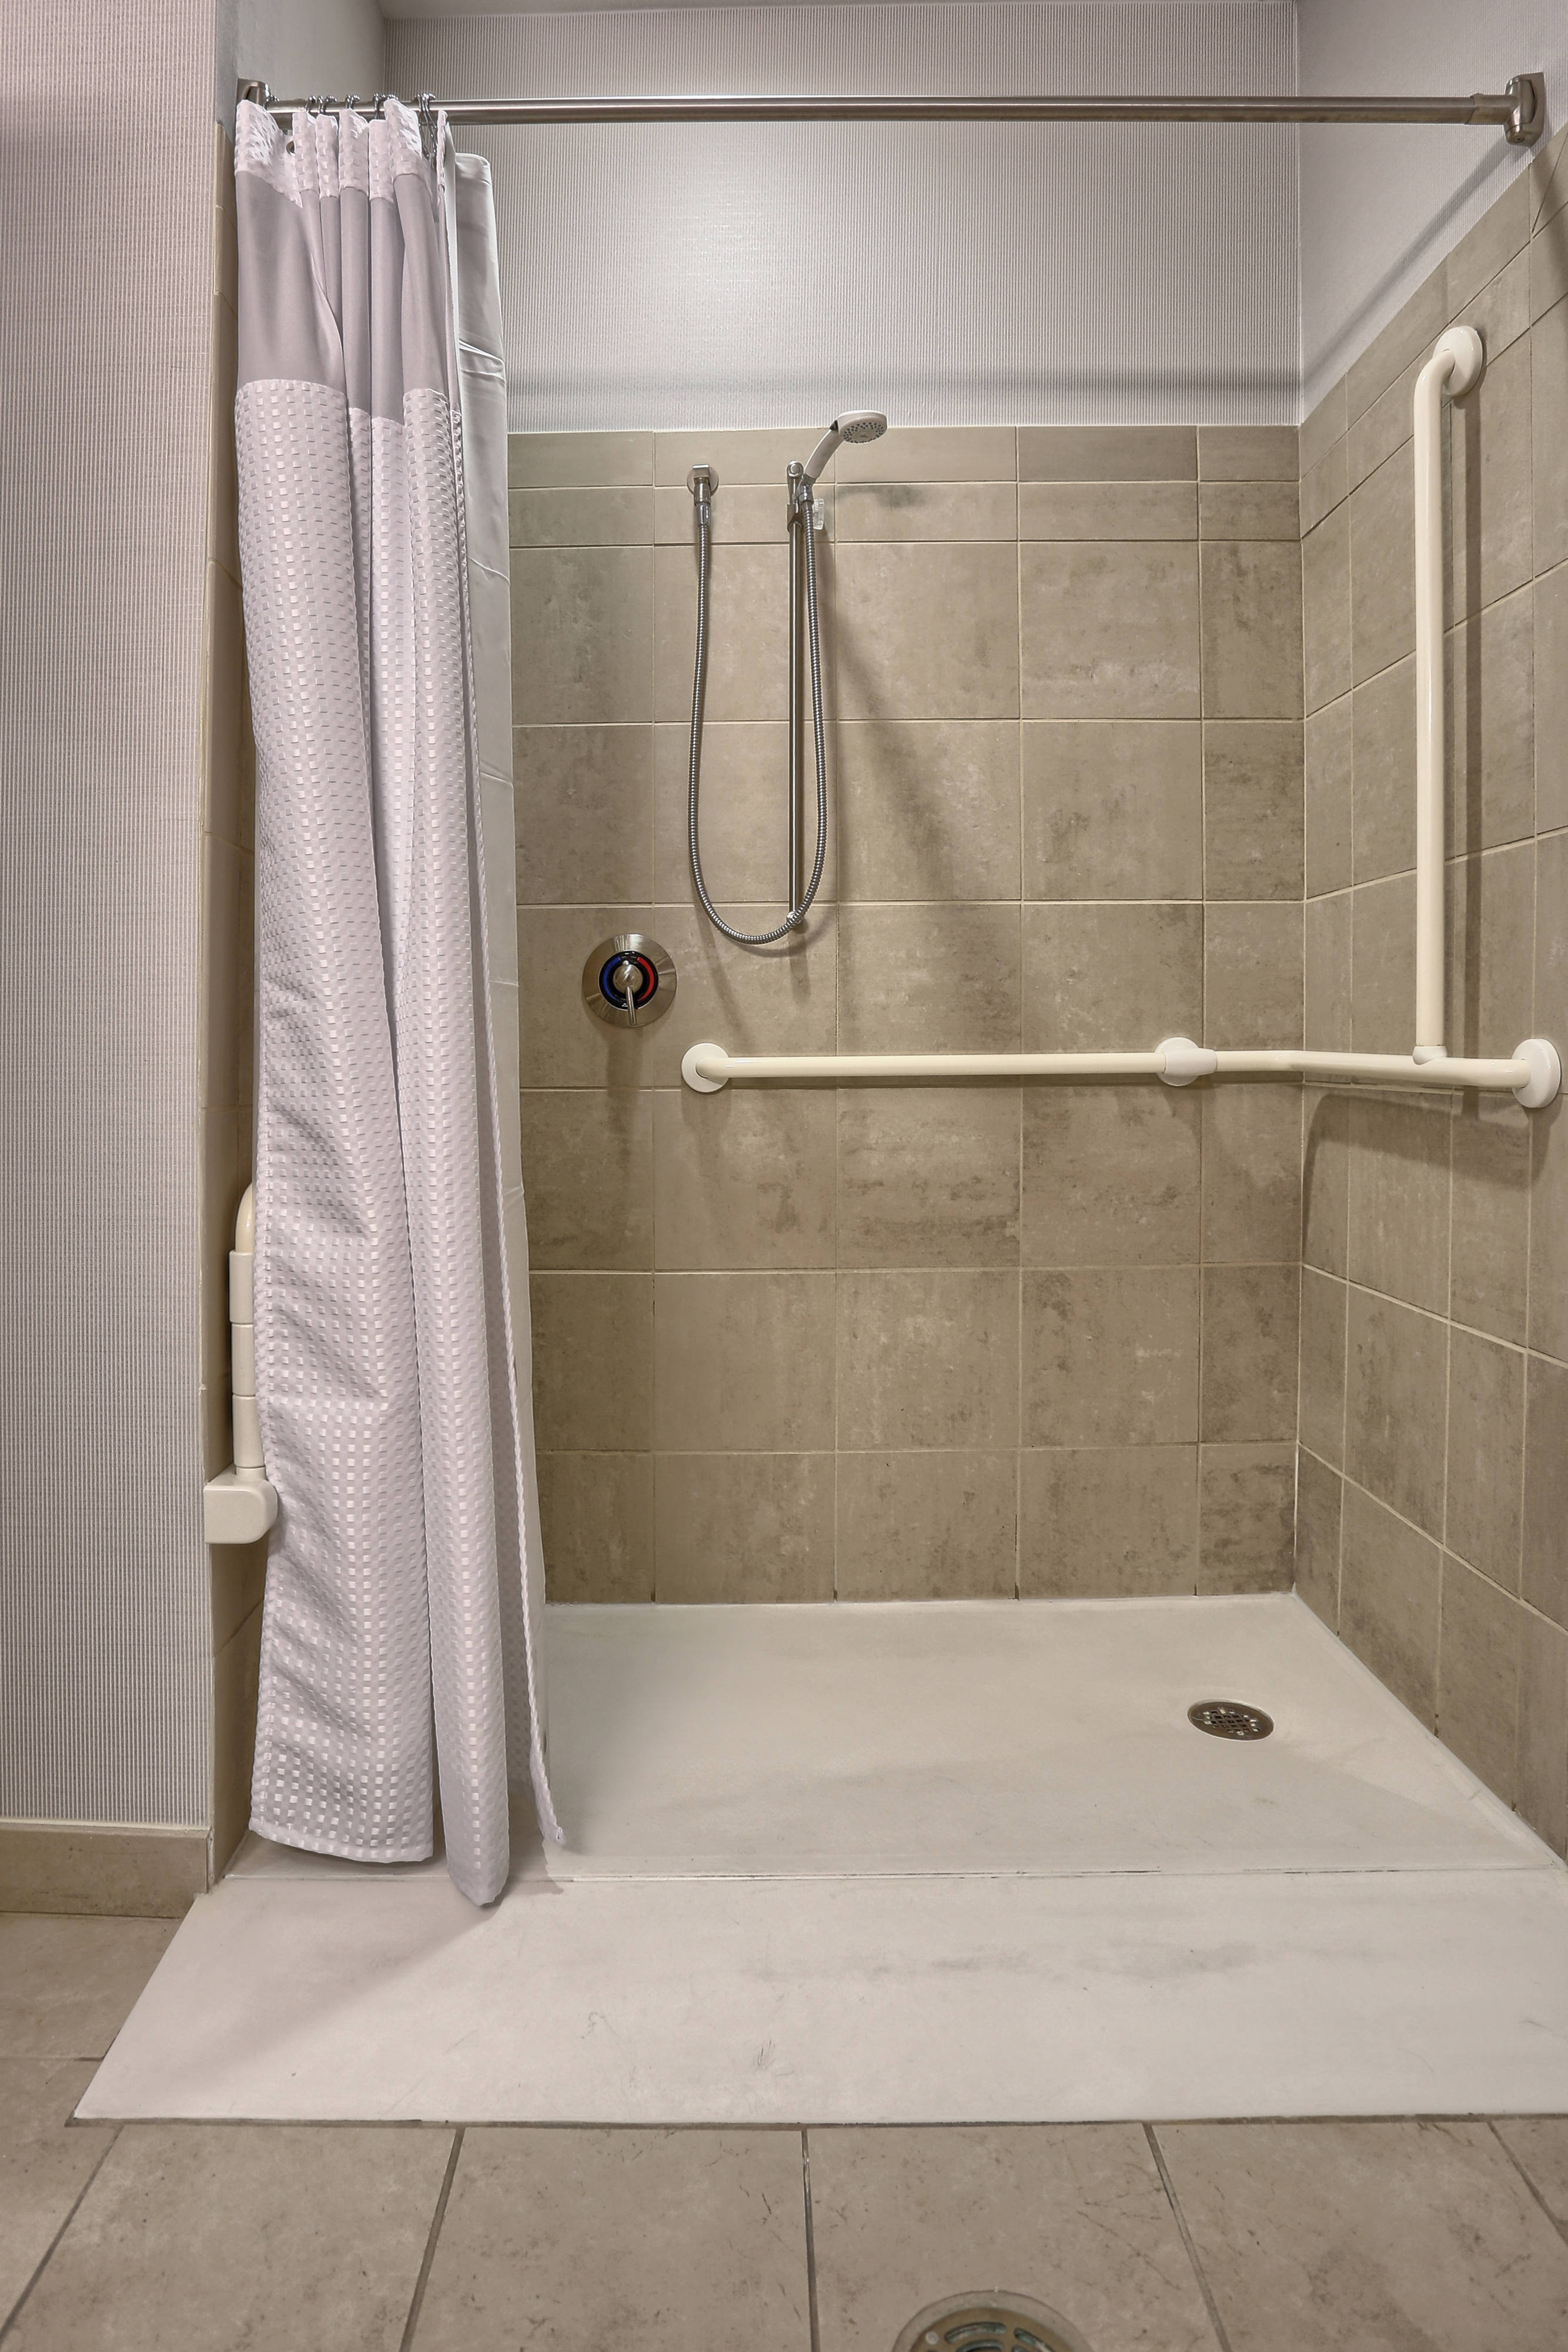 Mechanicsburg accessible hotel bathroom